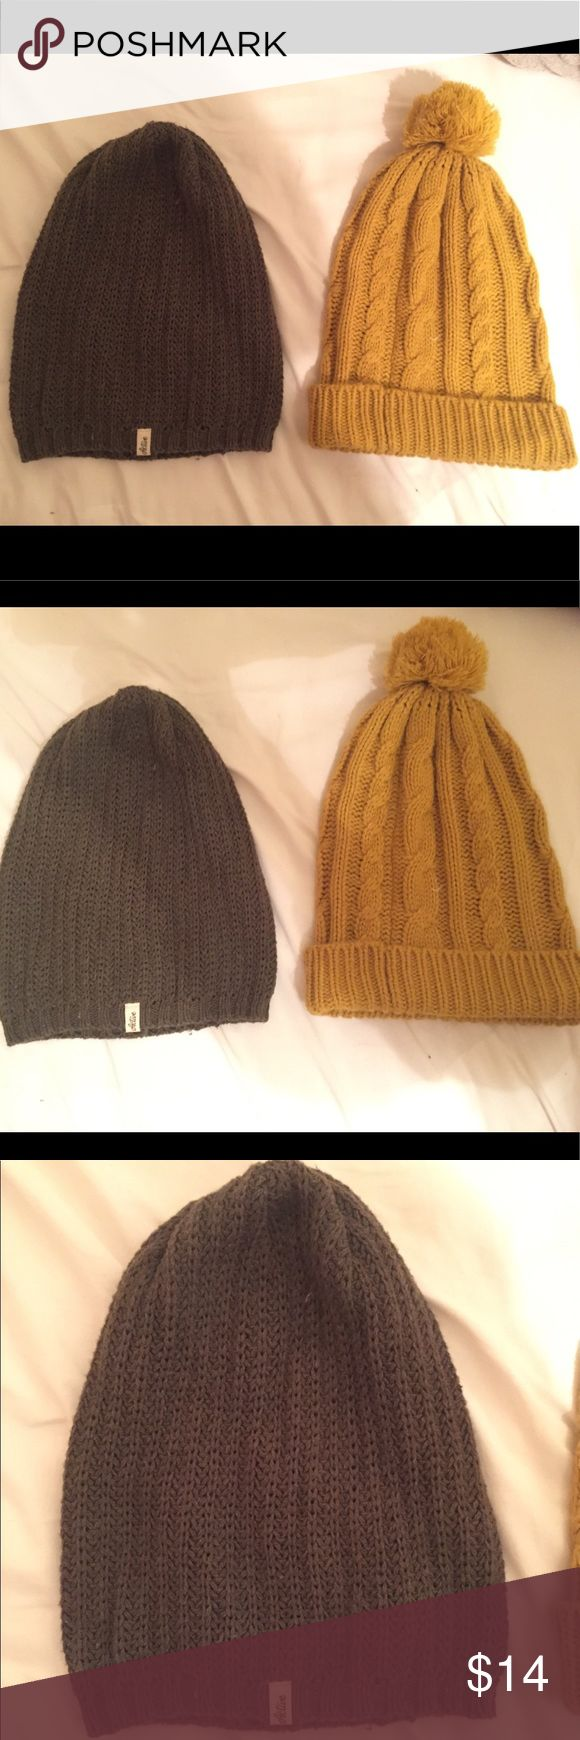 Beanie Bundle! Two floppy knit wool beanies! One is mustard yellow with a Pom-Pom accent and a cable knit design. The other is from Active Ride Shop and is army green with an Active logo at the bottom. Active Ride Shop Accessories Hats